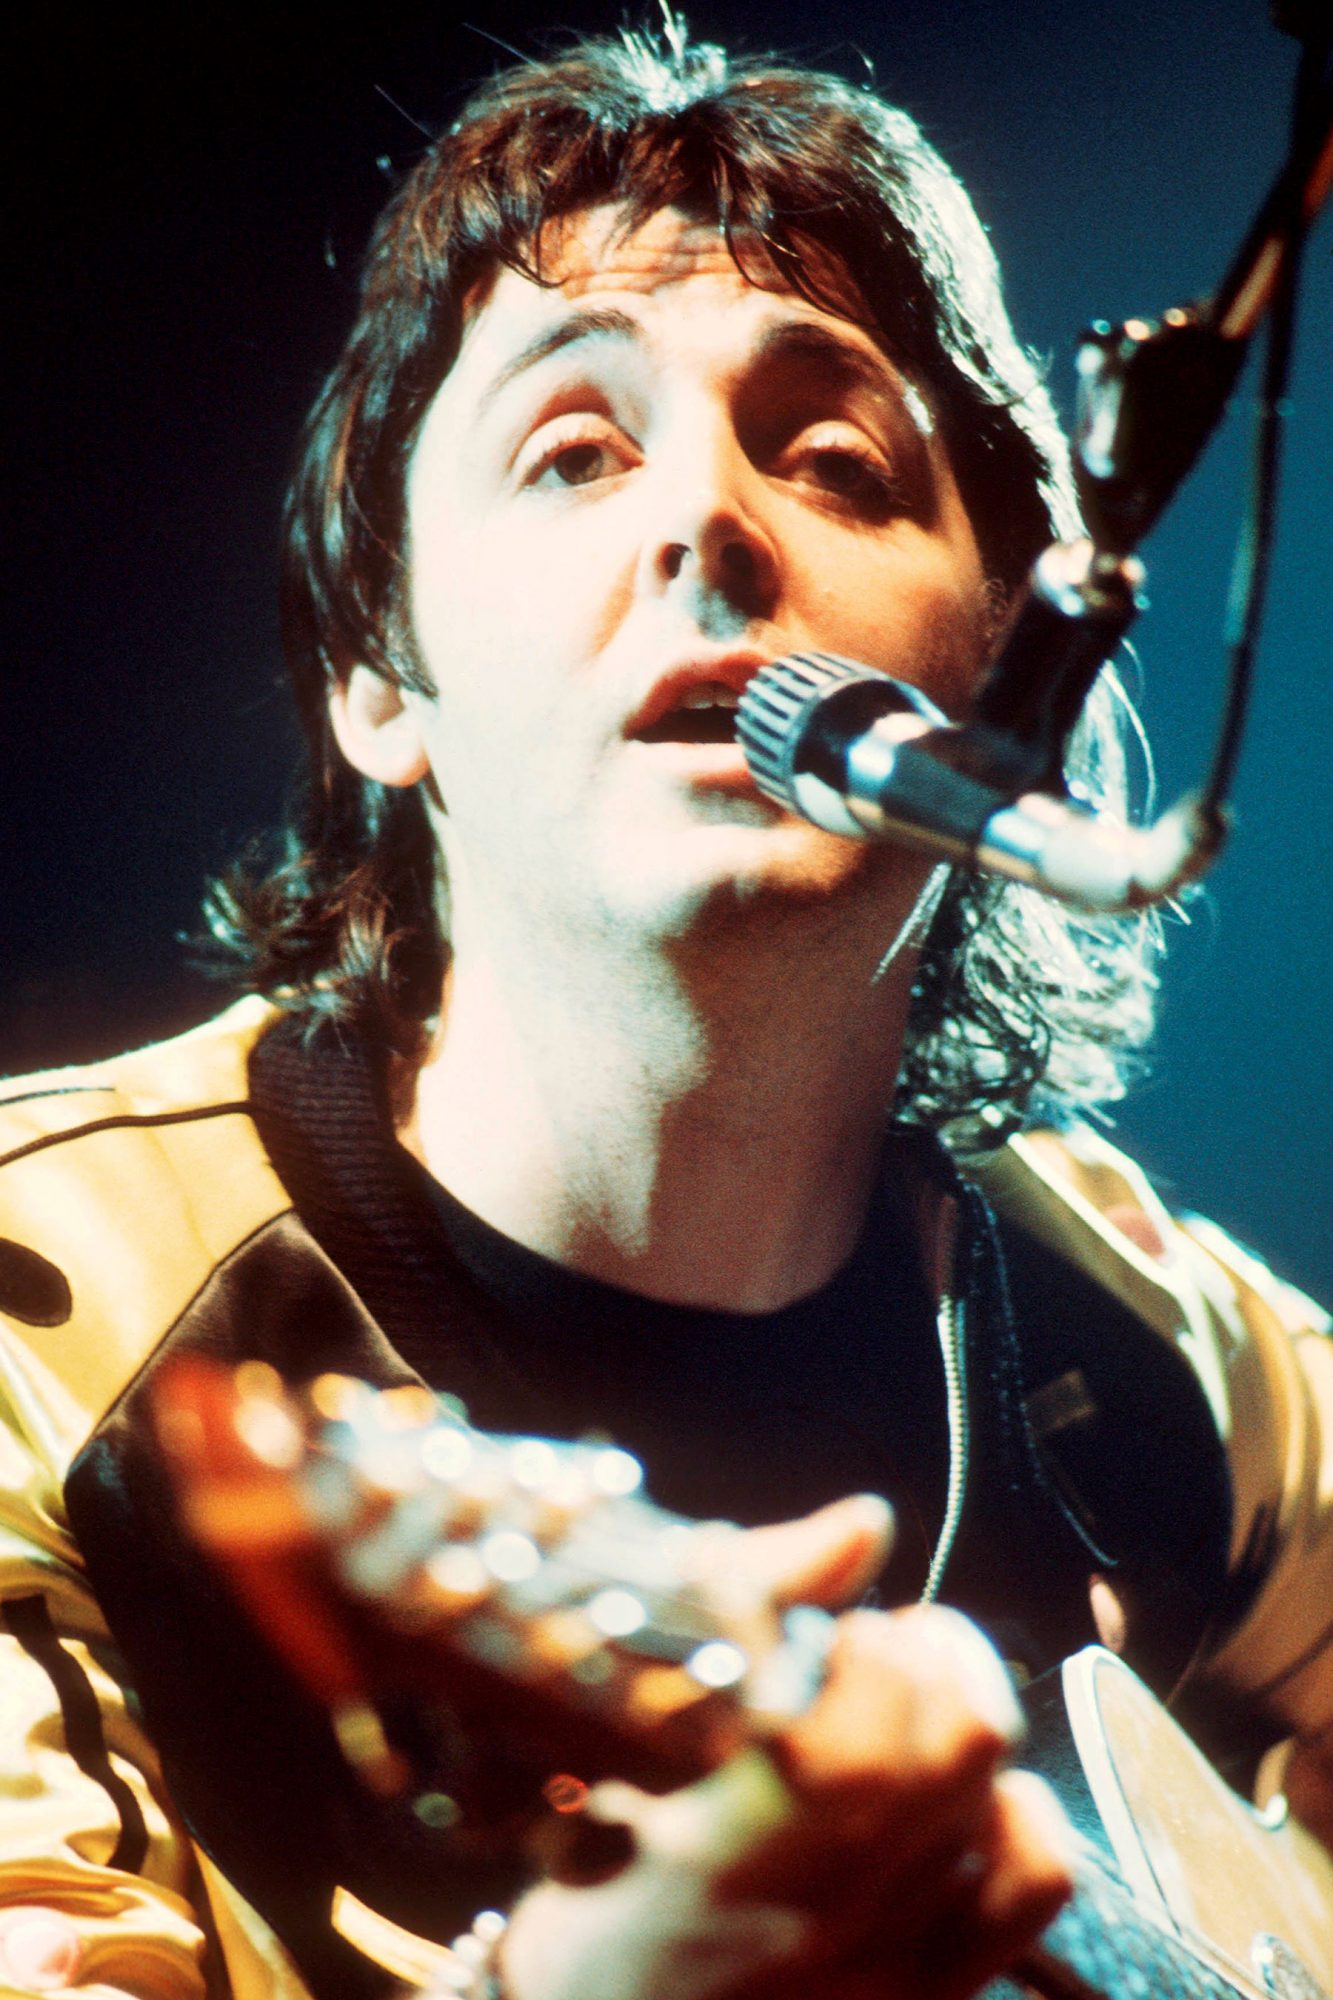 Paul McCartney On Stage With Wings